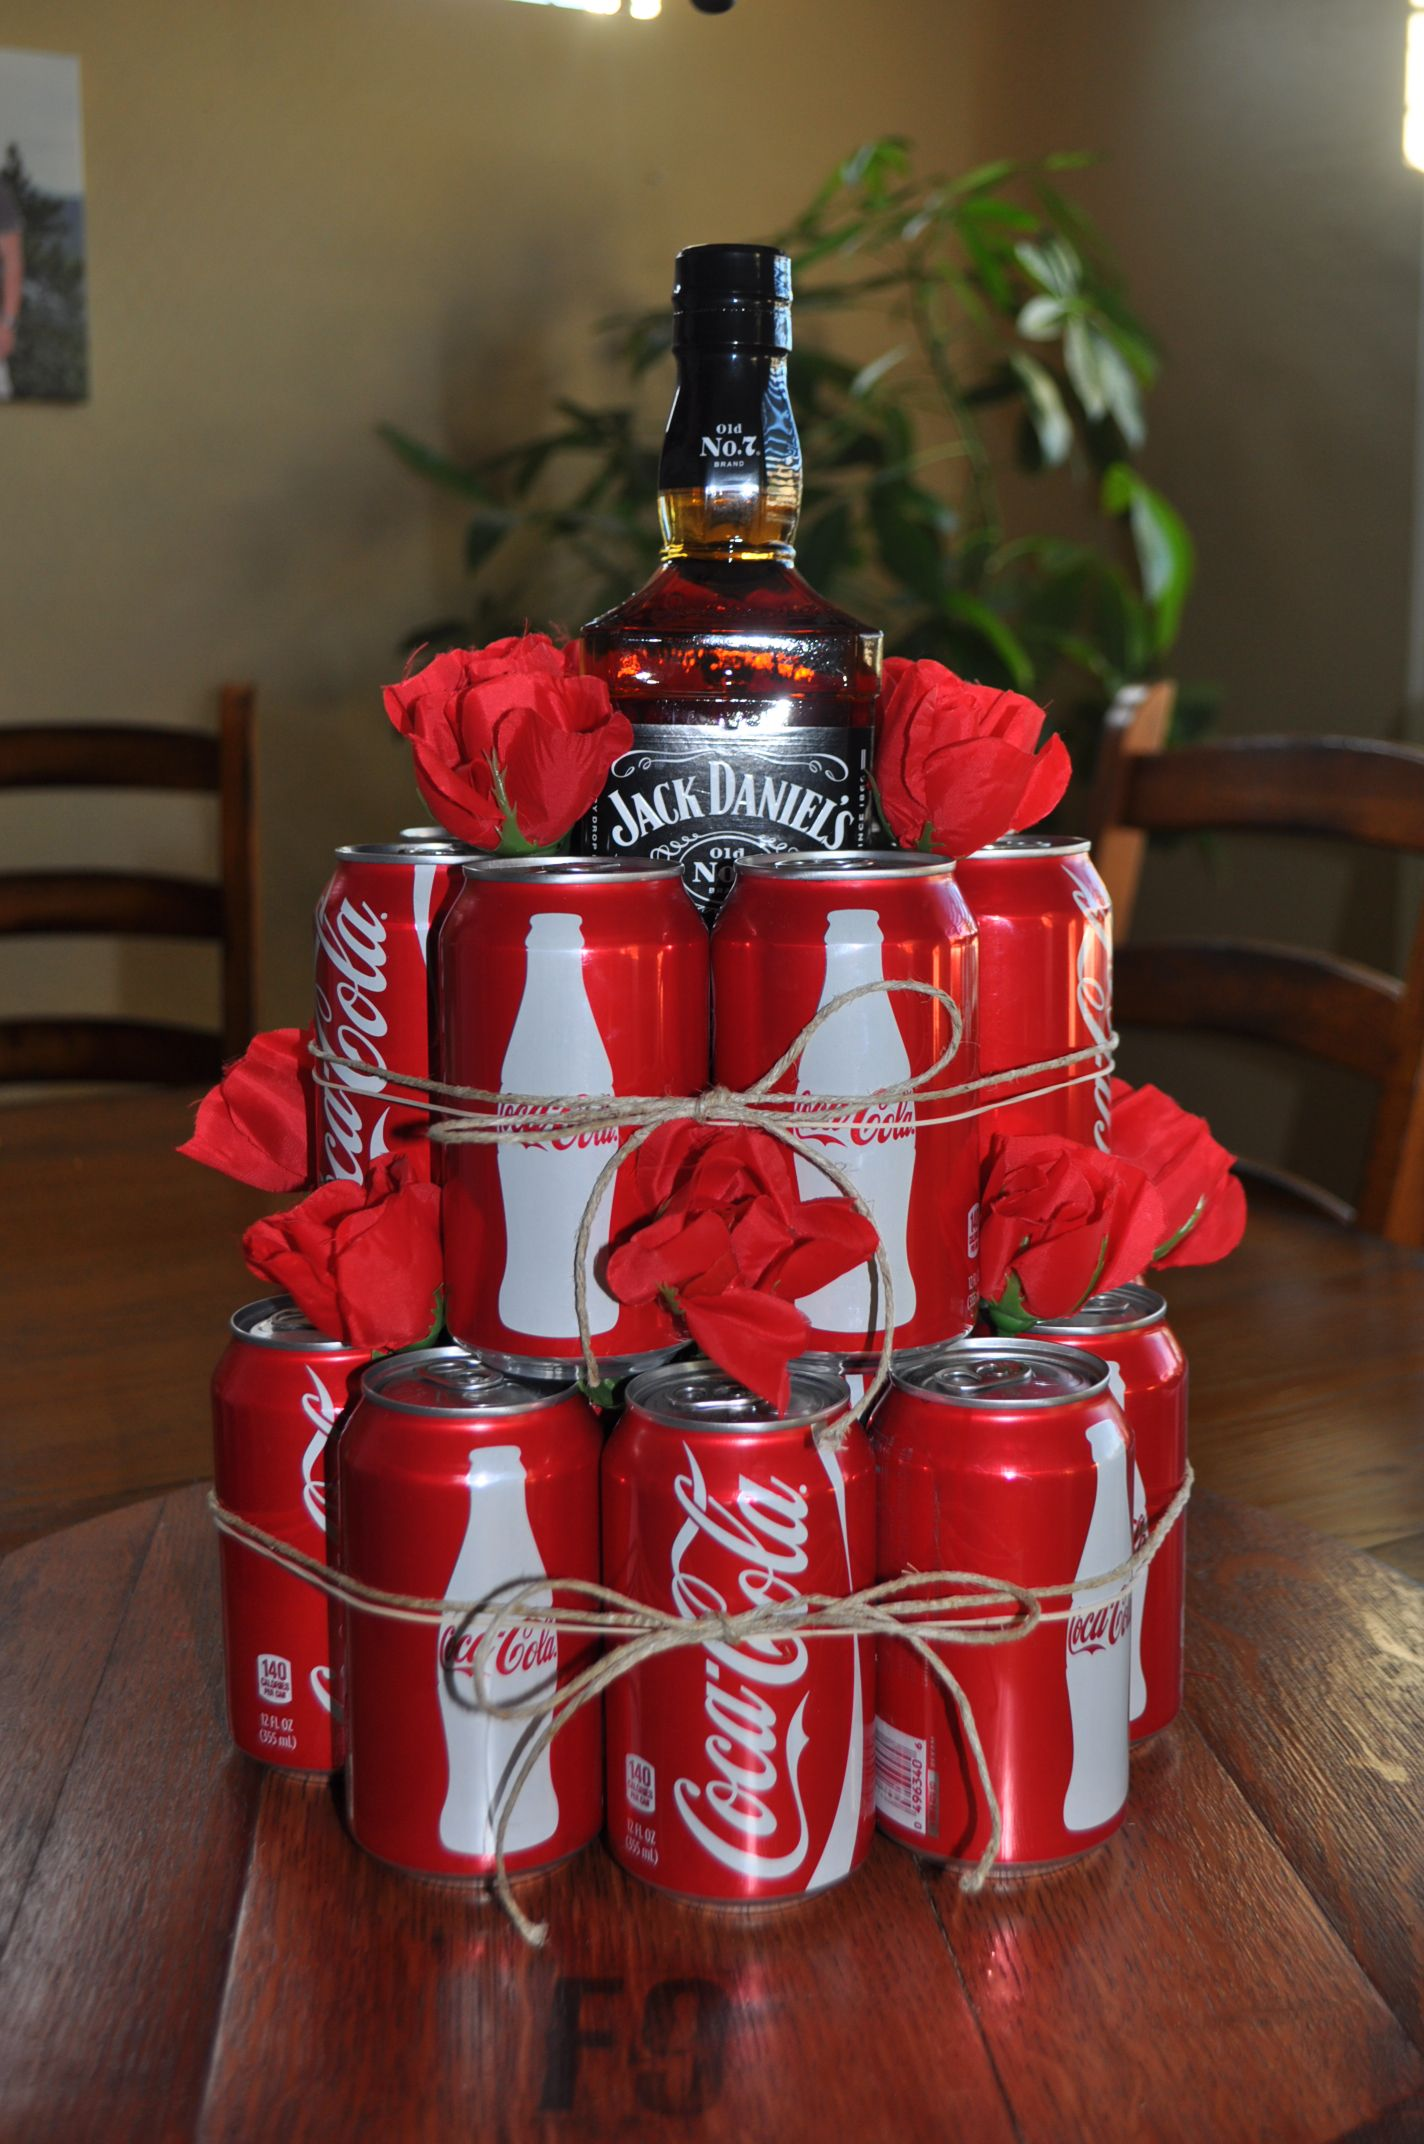 21 Present Ideas For Your Bff S 21st Birthday